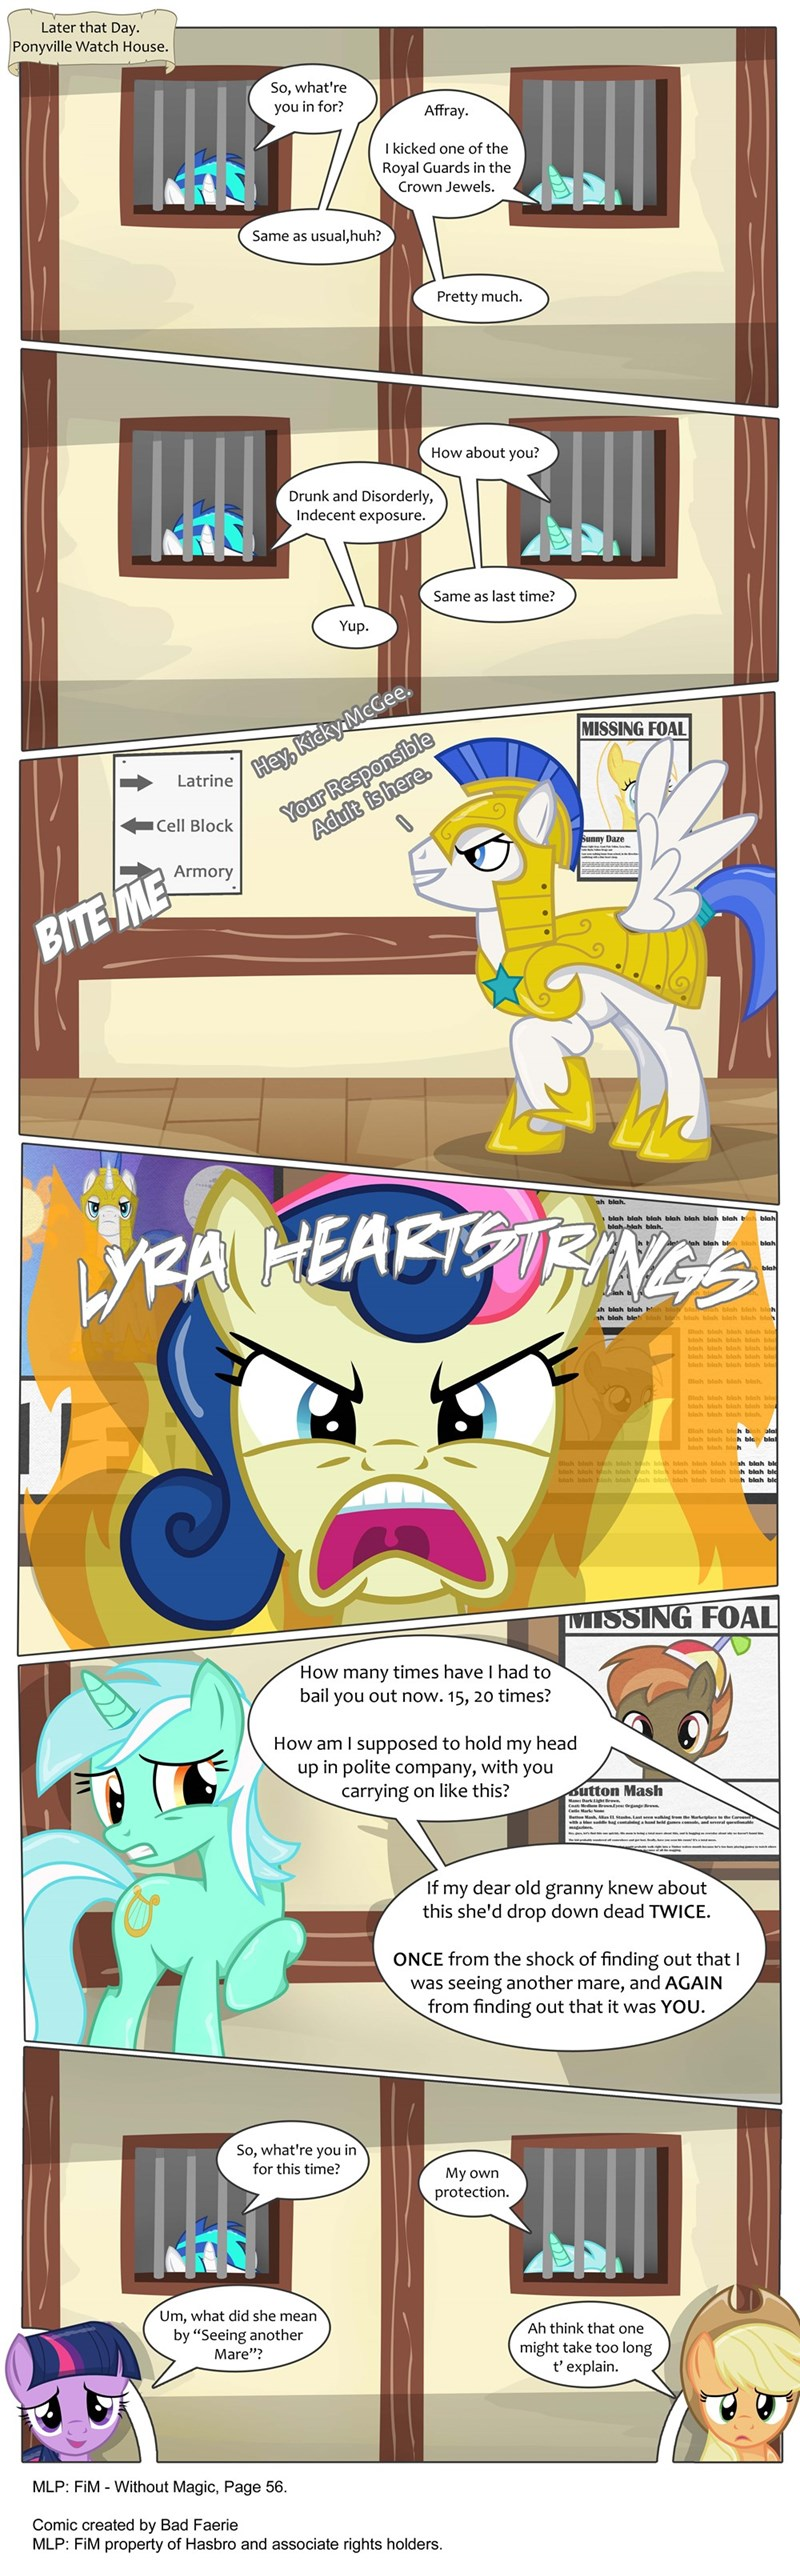 applejack twilight sparkle lyra heartstrings vinyl scratch dj PON-3 comic bon bon - 8970916096